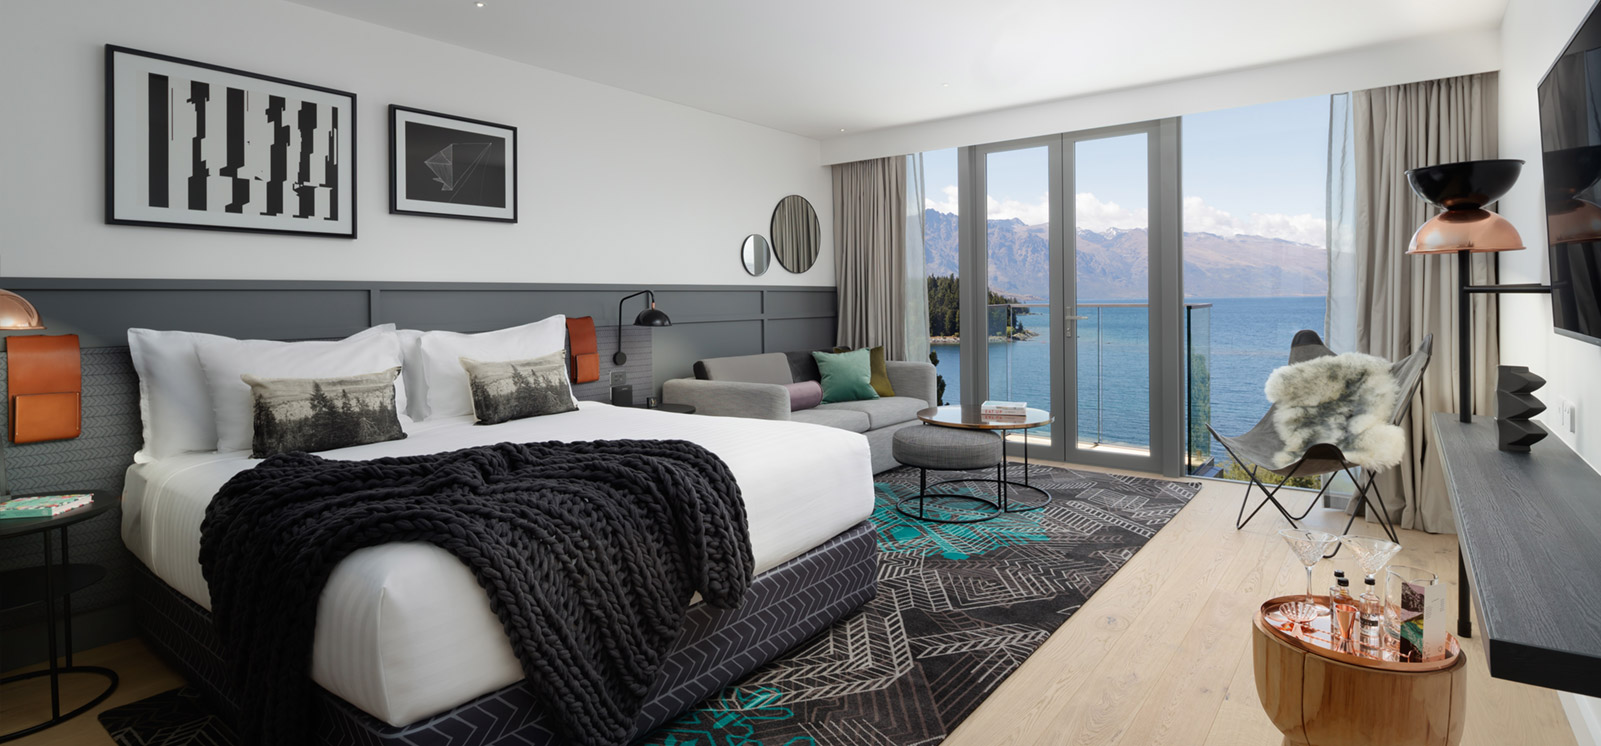 QT Queenstown: Where mother nature meets modern design